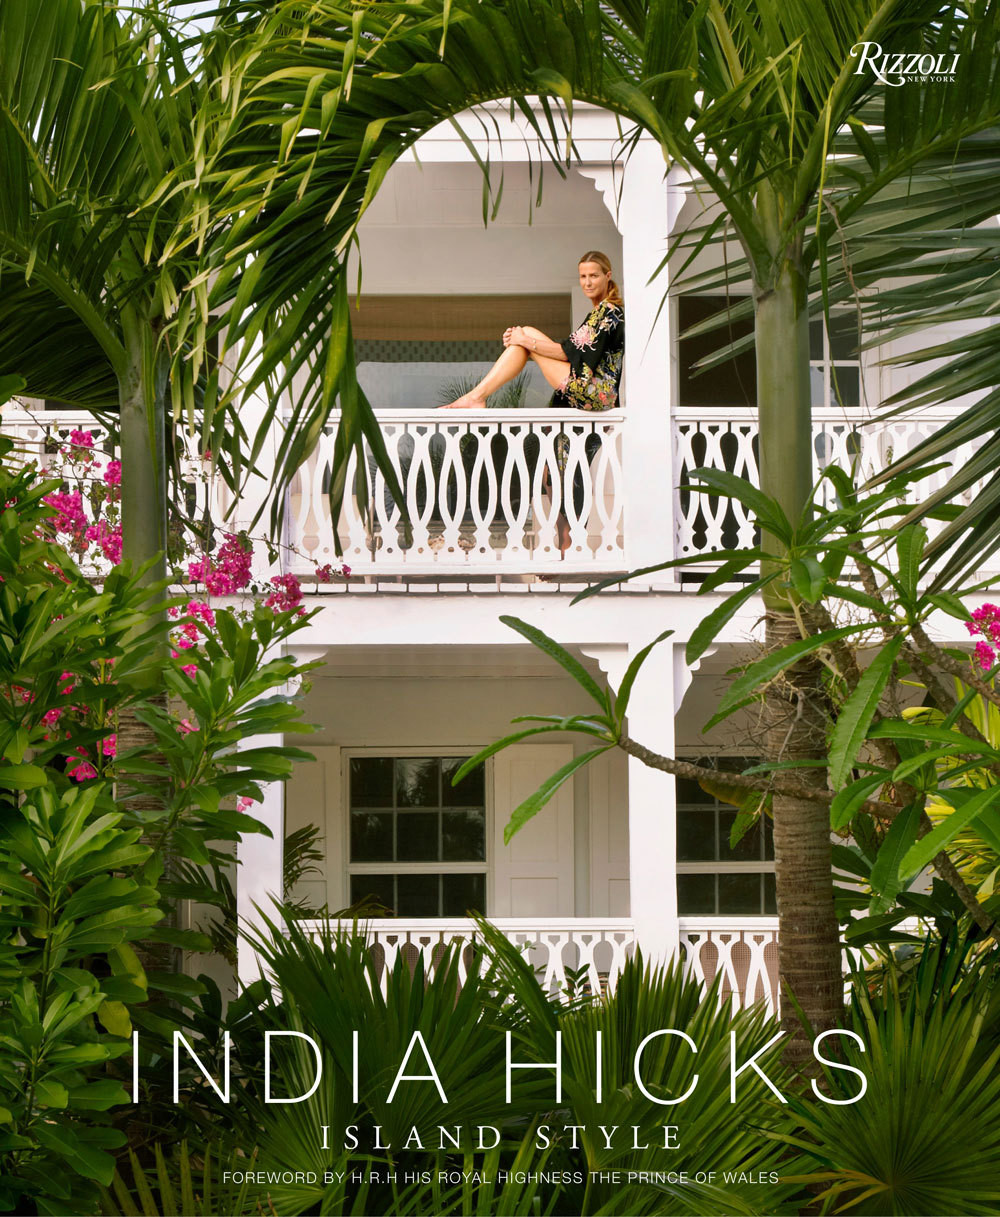 Hicks's third book, India Hicks: Island Style, is out this month from Rizzoli.